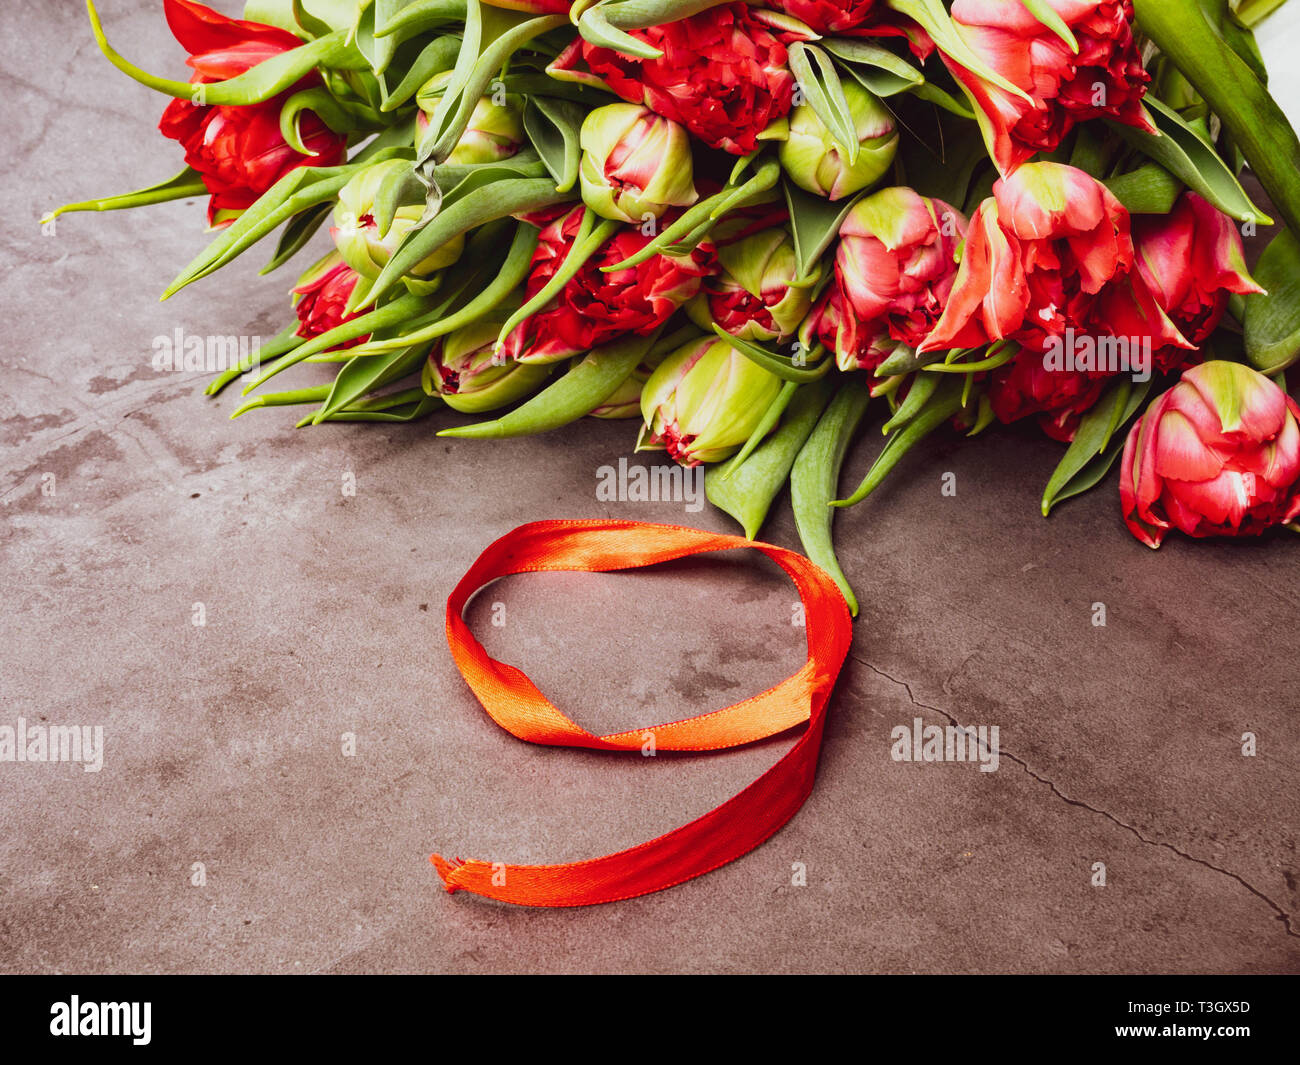 Symbols of memory 9 May, 23 February card concept. Red tulip and red ribbon, copy space, warm colors Stock Photo